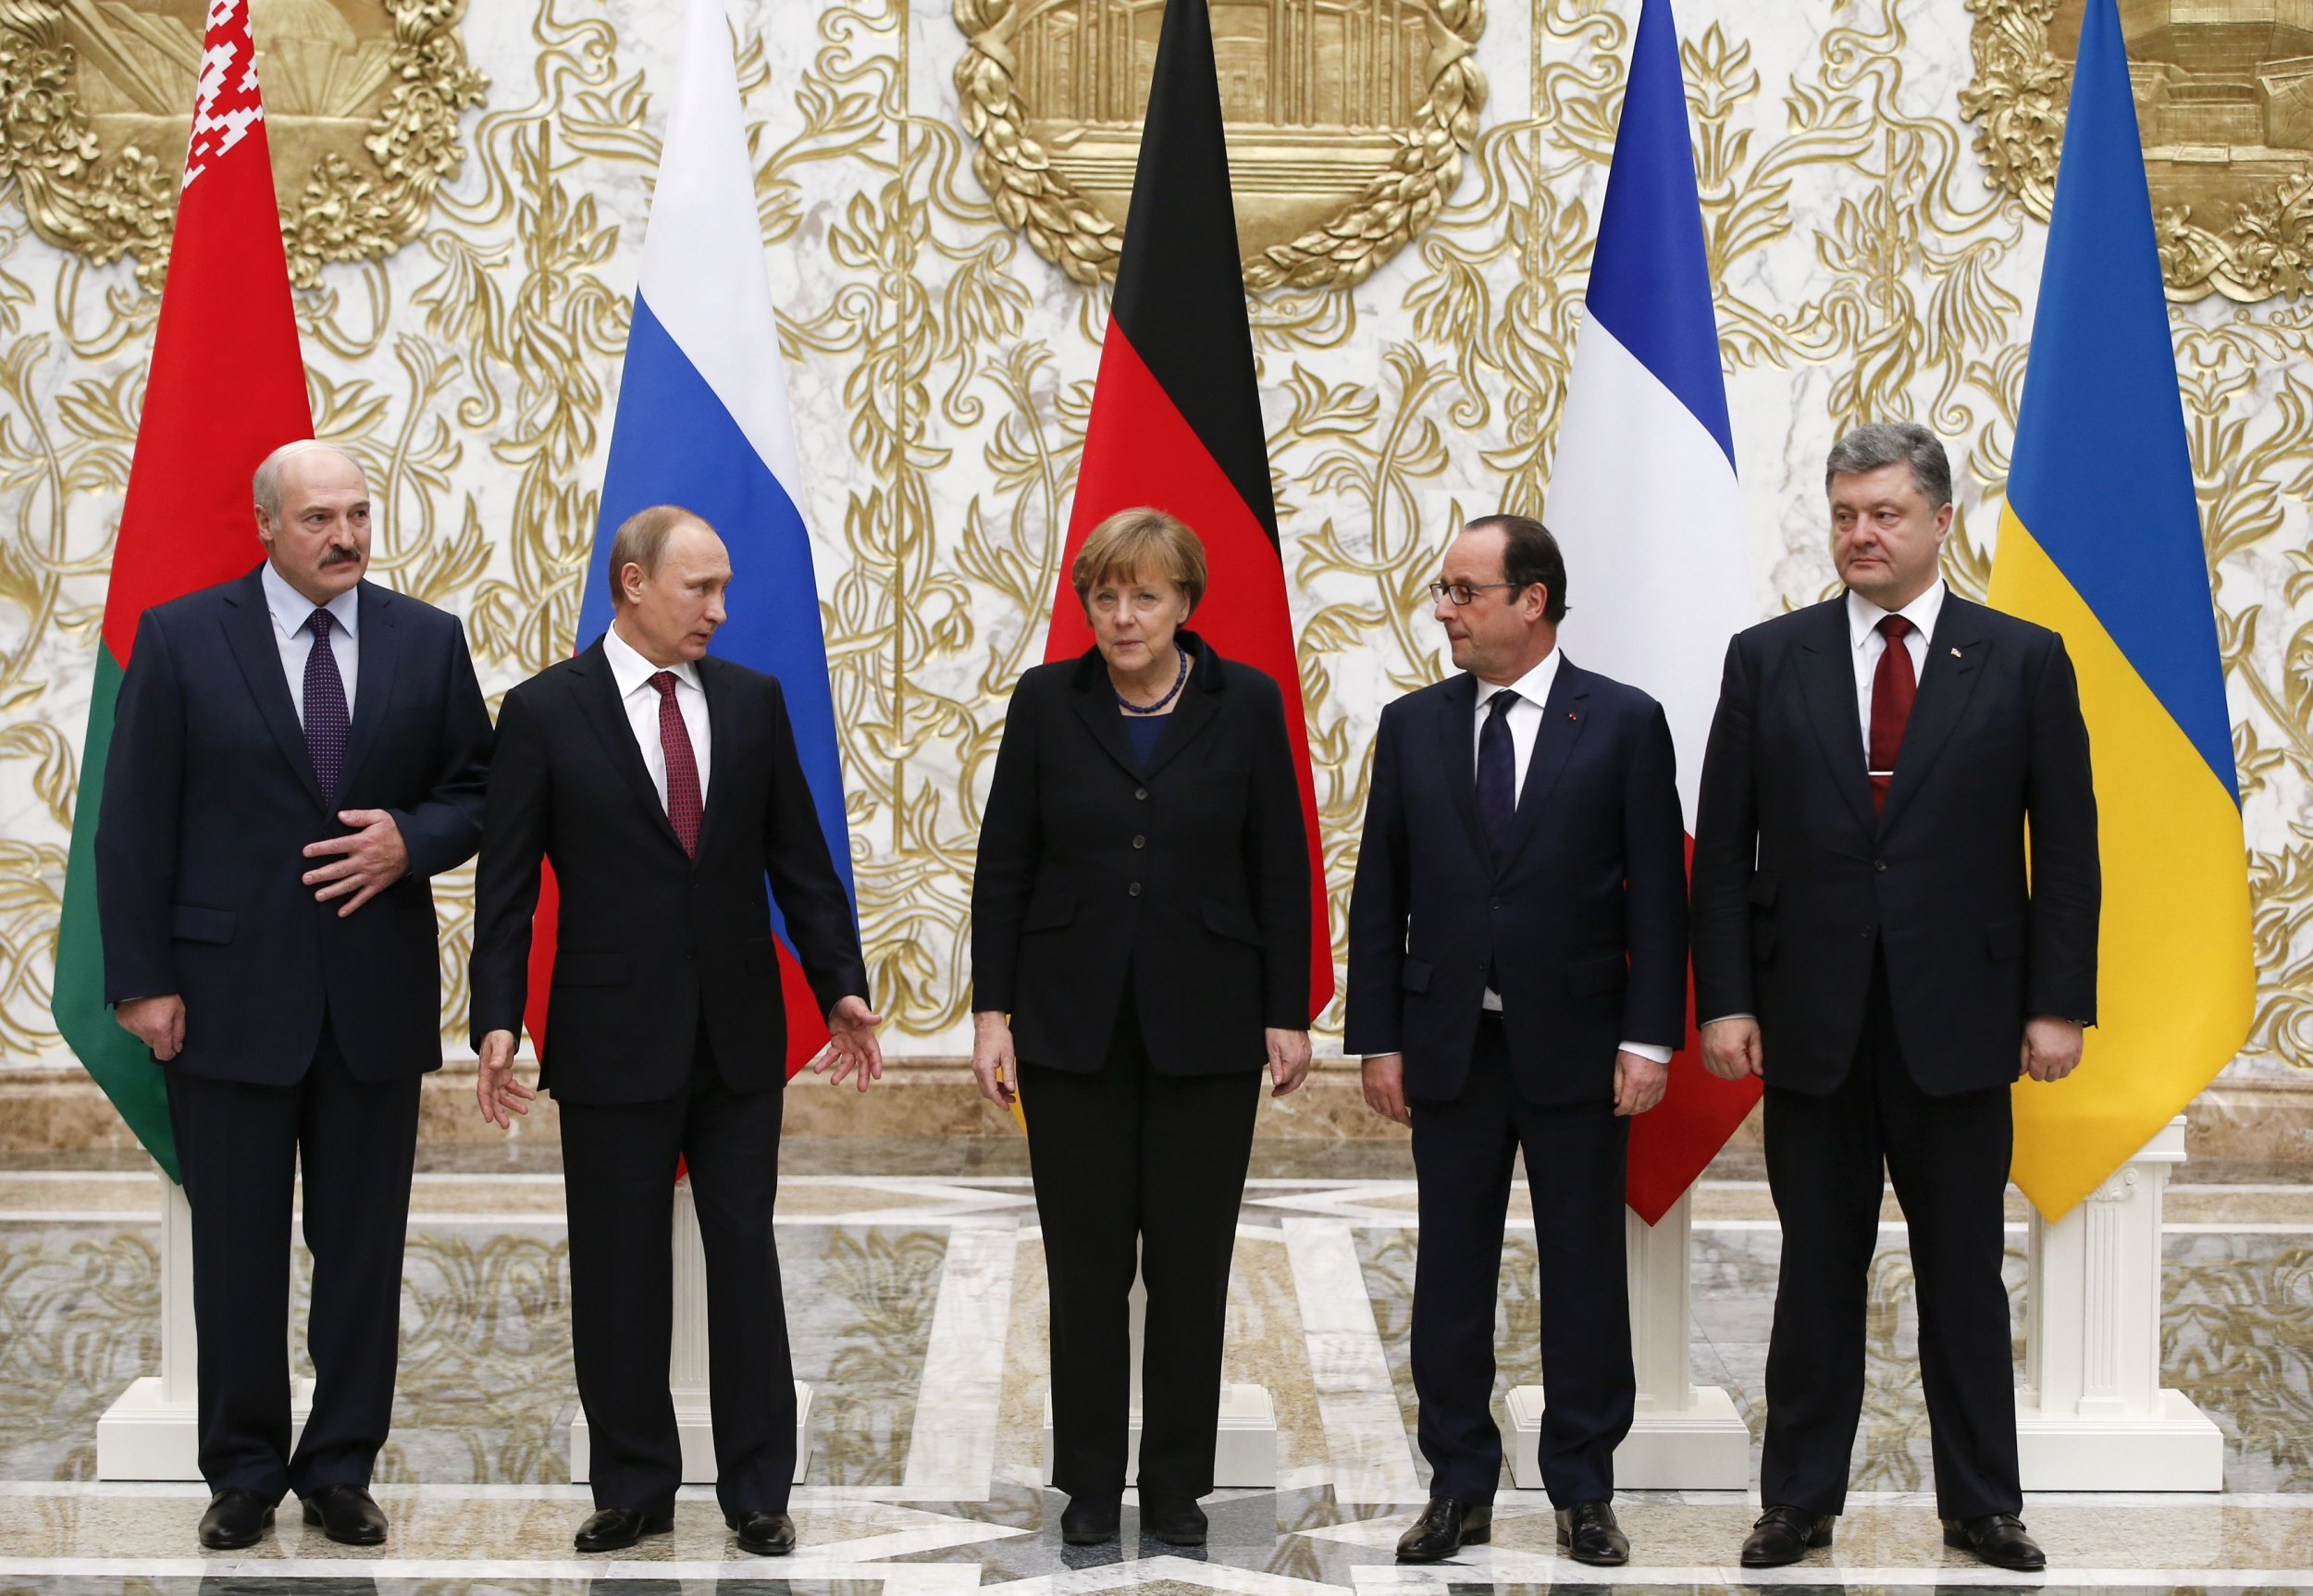 The four leaders